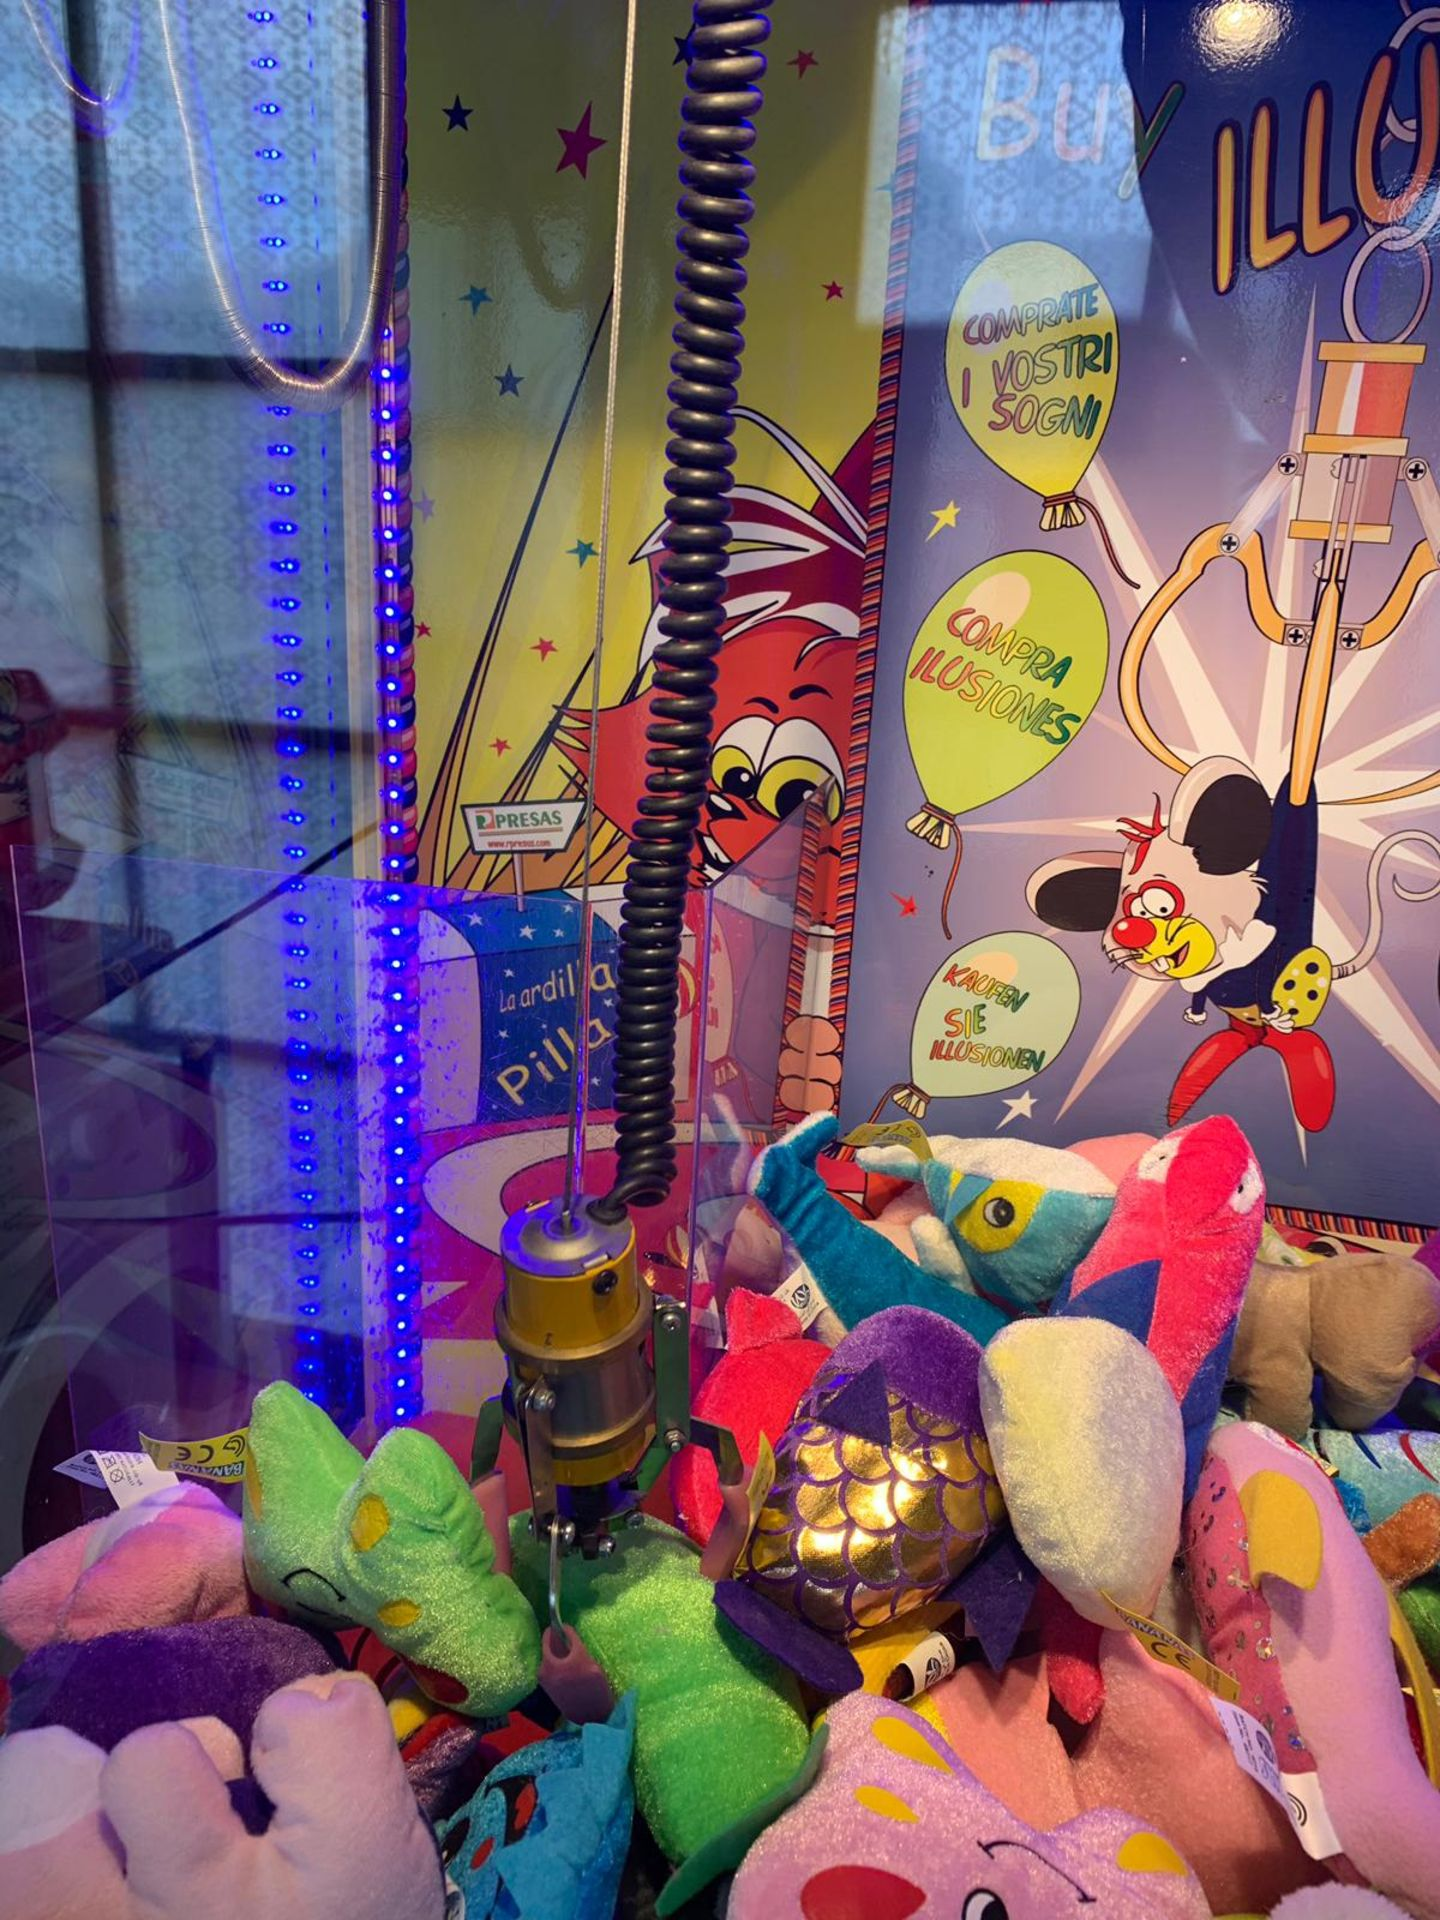 Buy Illusion Arcade Claw Machine, In Working Order *Plus Vat* - Image 4 of 6